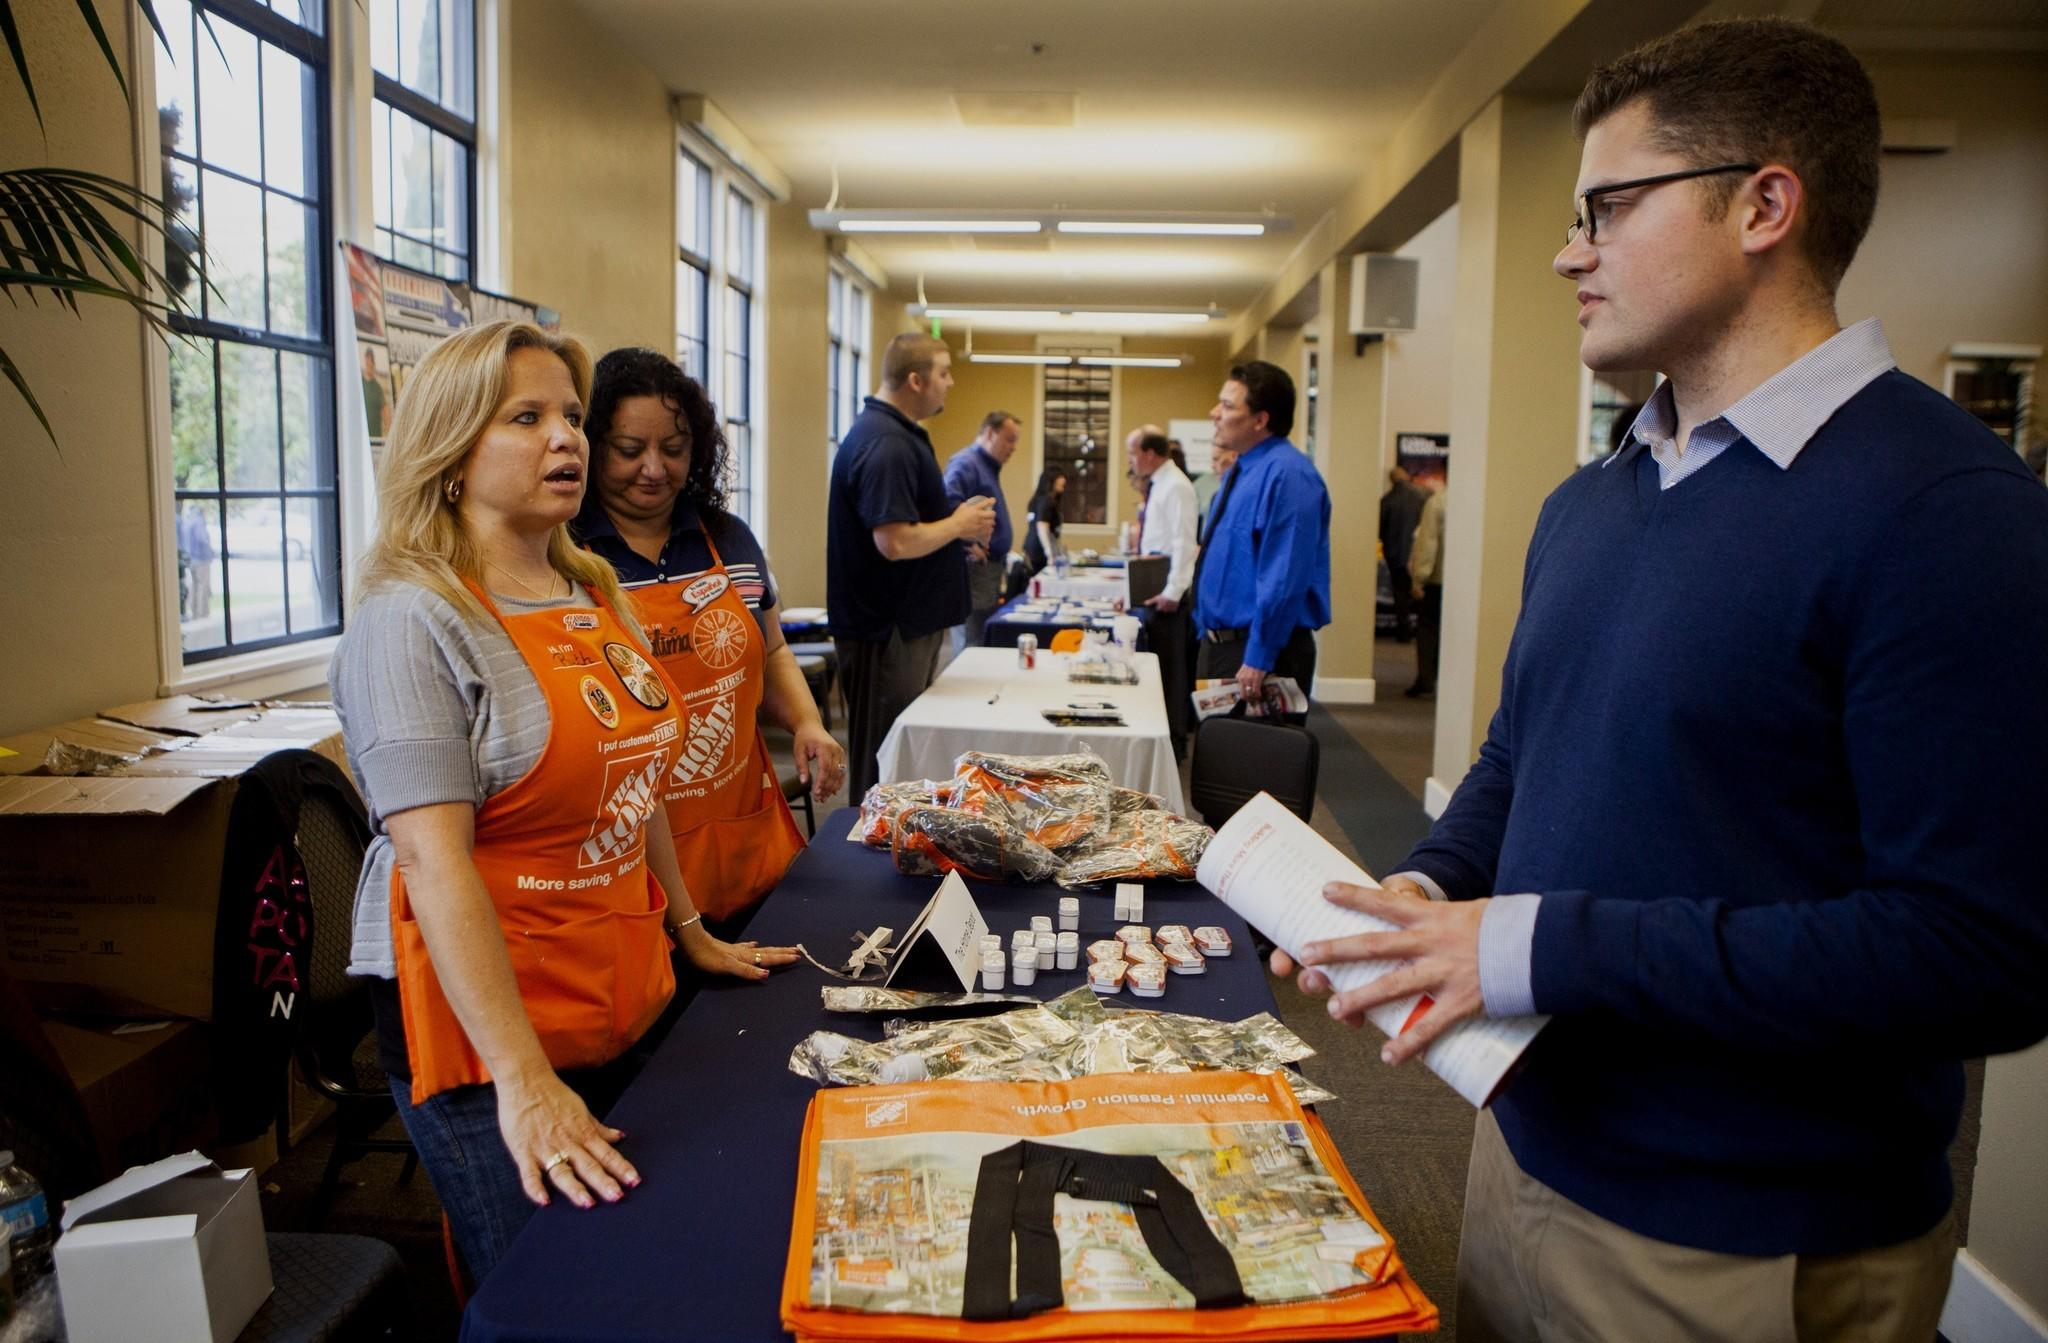 Home Depot On Fair: Private Sector Added Disappointing 139,000 Jobs Last Month